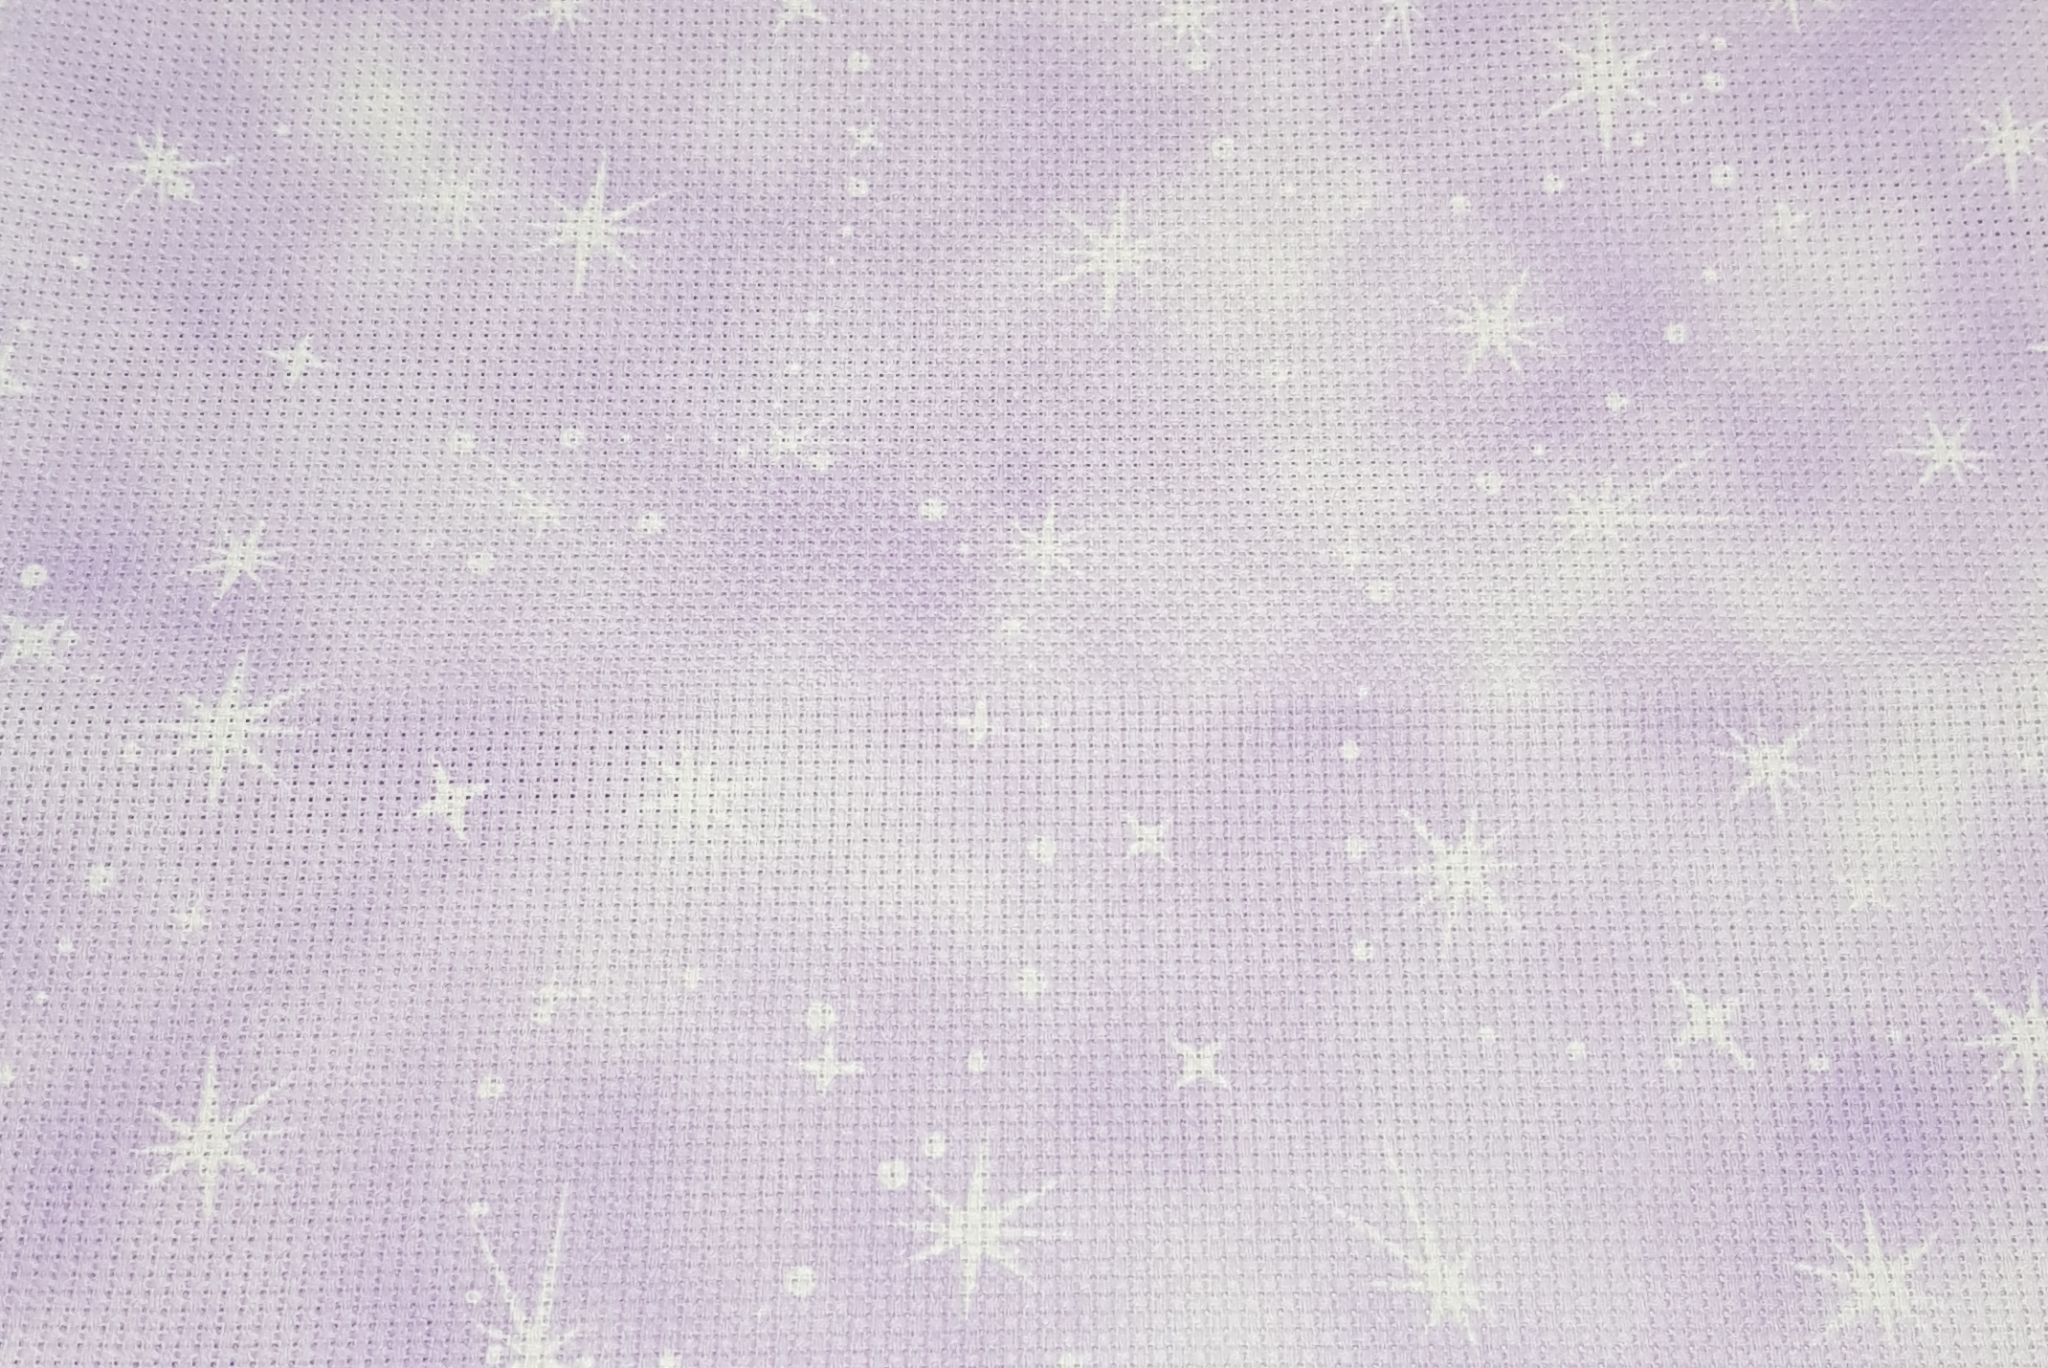 Piece approx 45 x 50cm Fabric Flair Silver /& Gold Fairy Dust with sparkles 16 count Aida